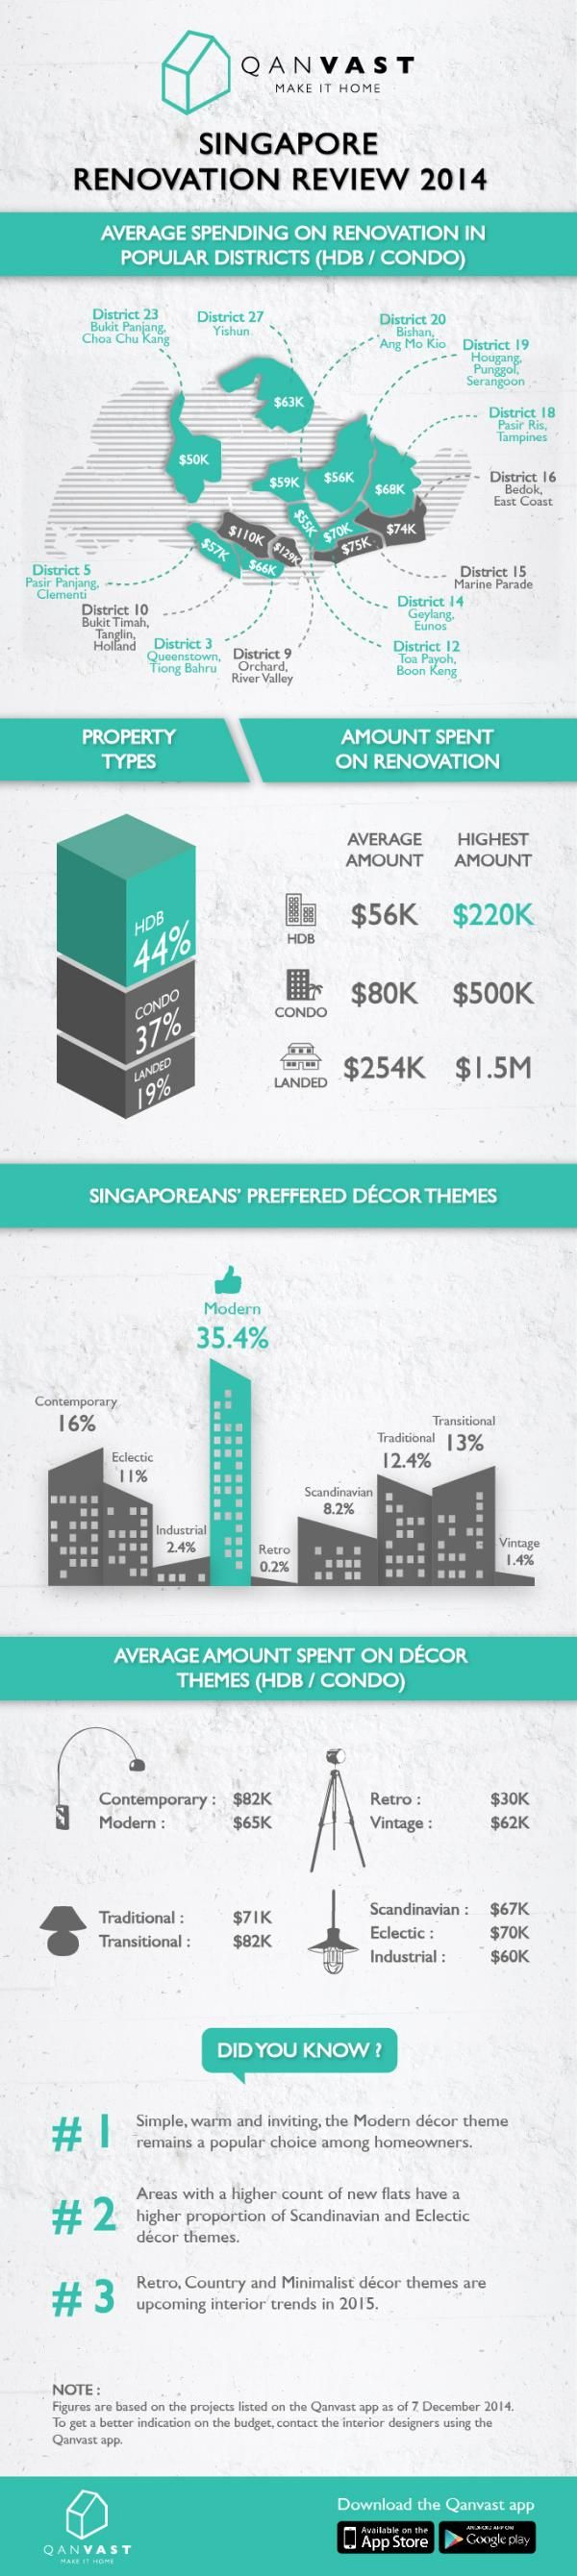 How Much Are Singaporeans Spending on Renovating Their Homes? - Yahoo News Singapore